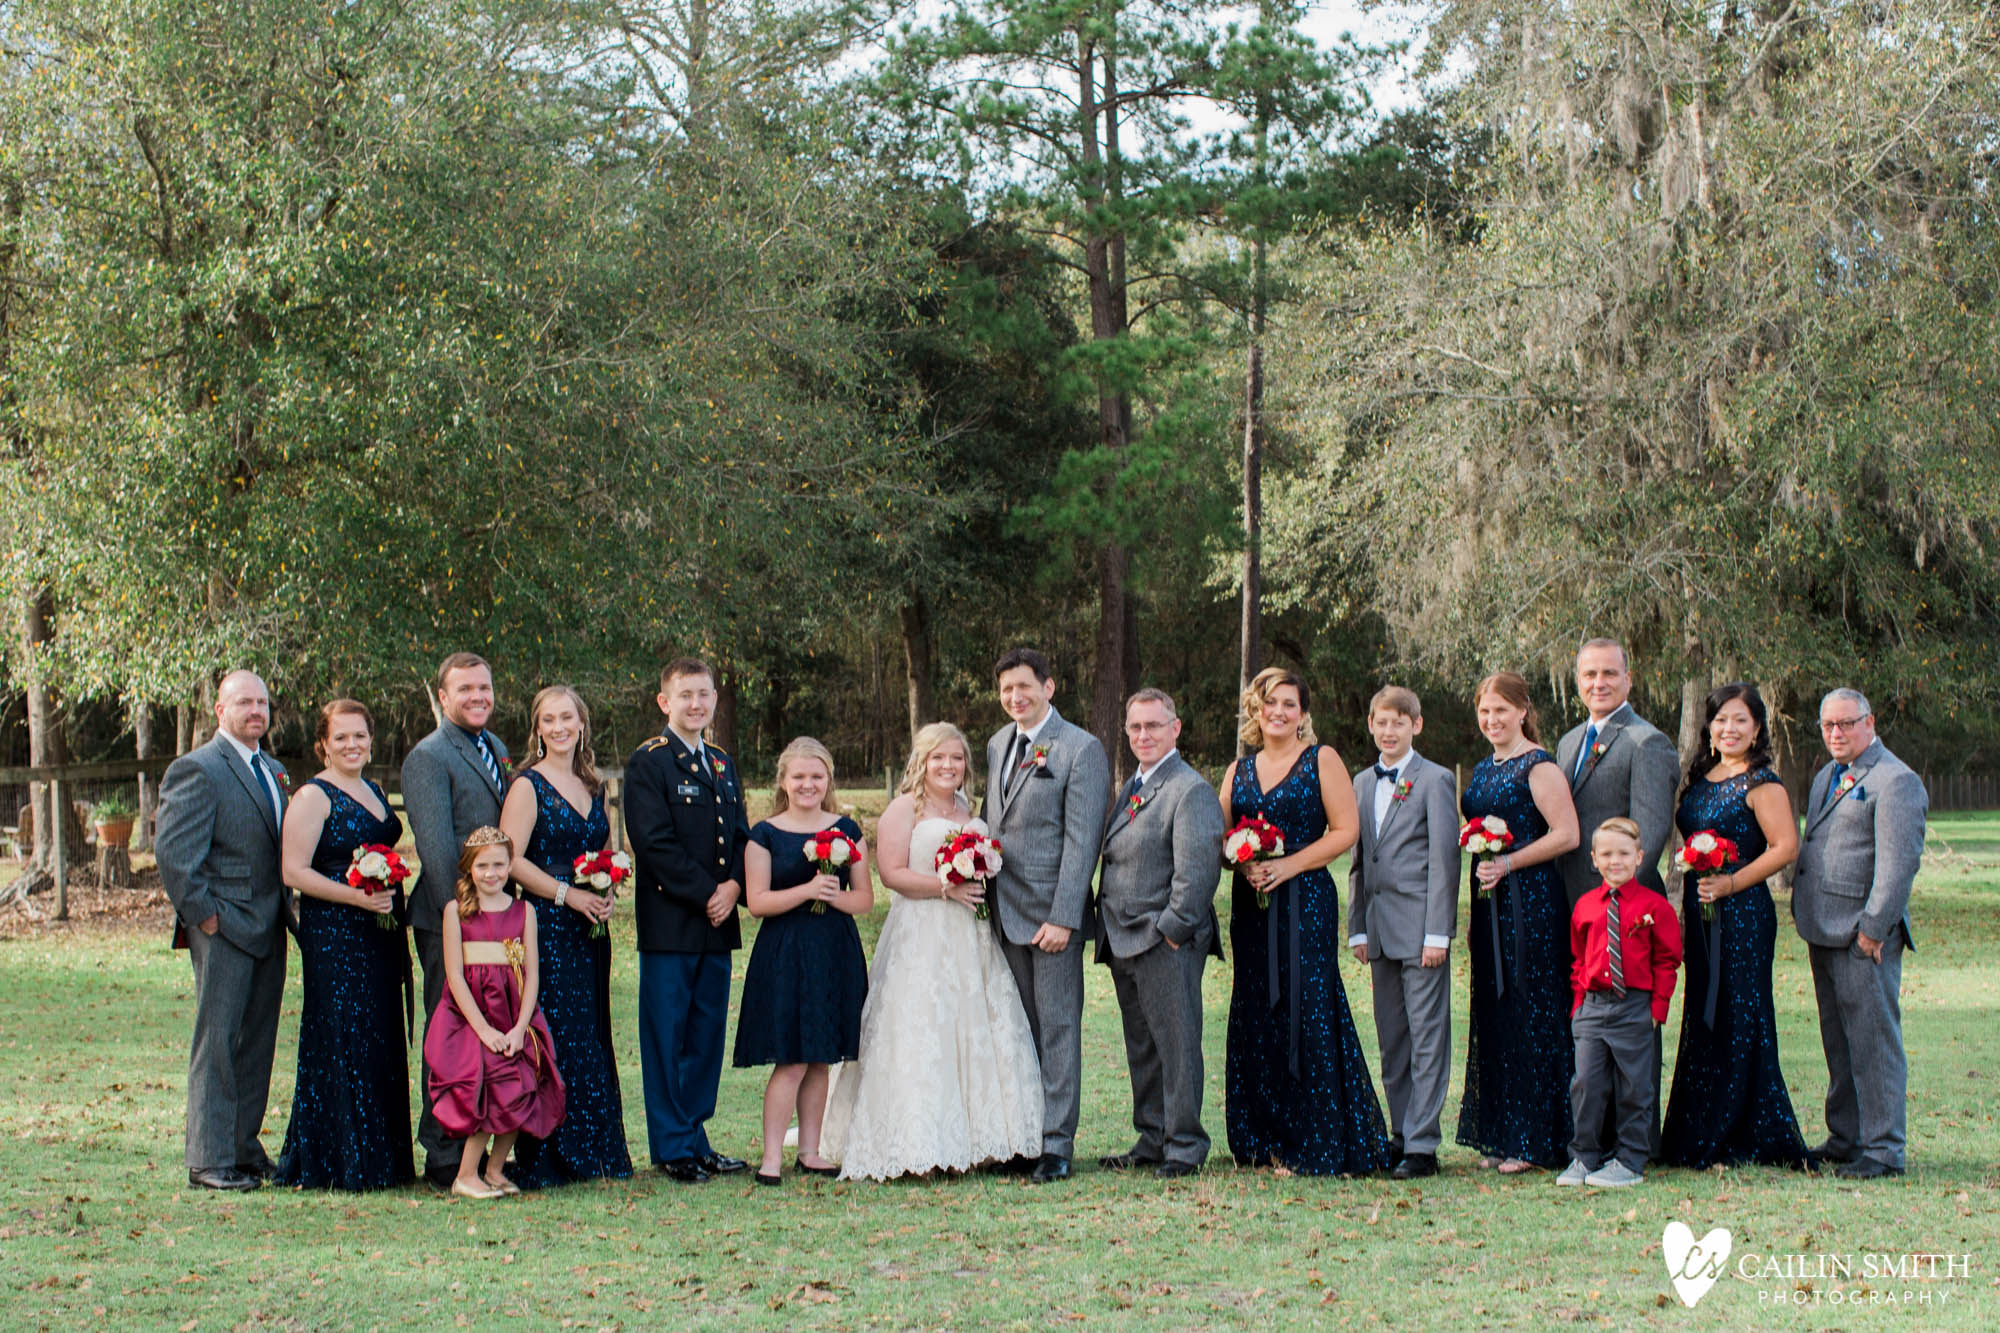 Christie_Nathan_Wedding_Photography_0041.jpg